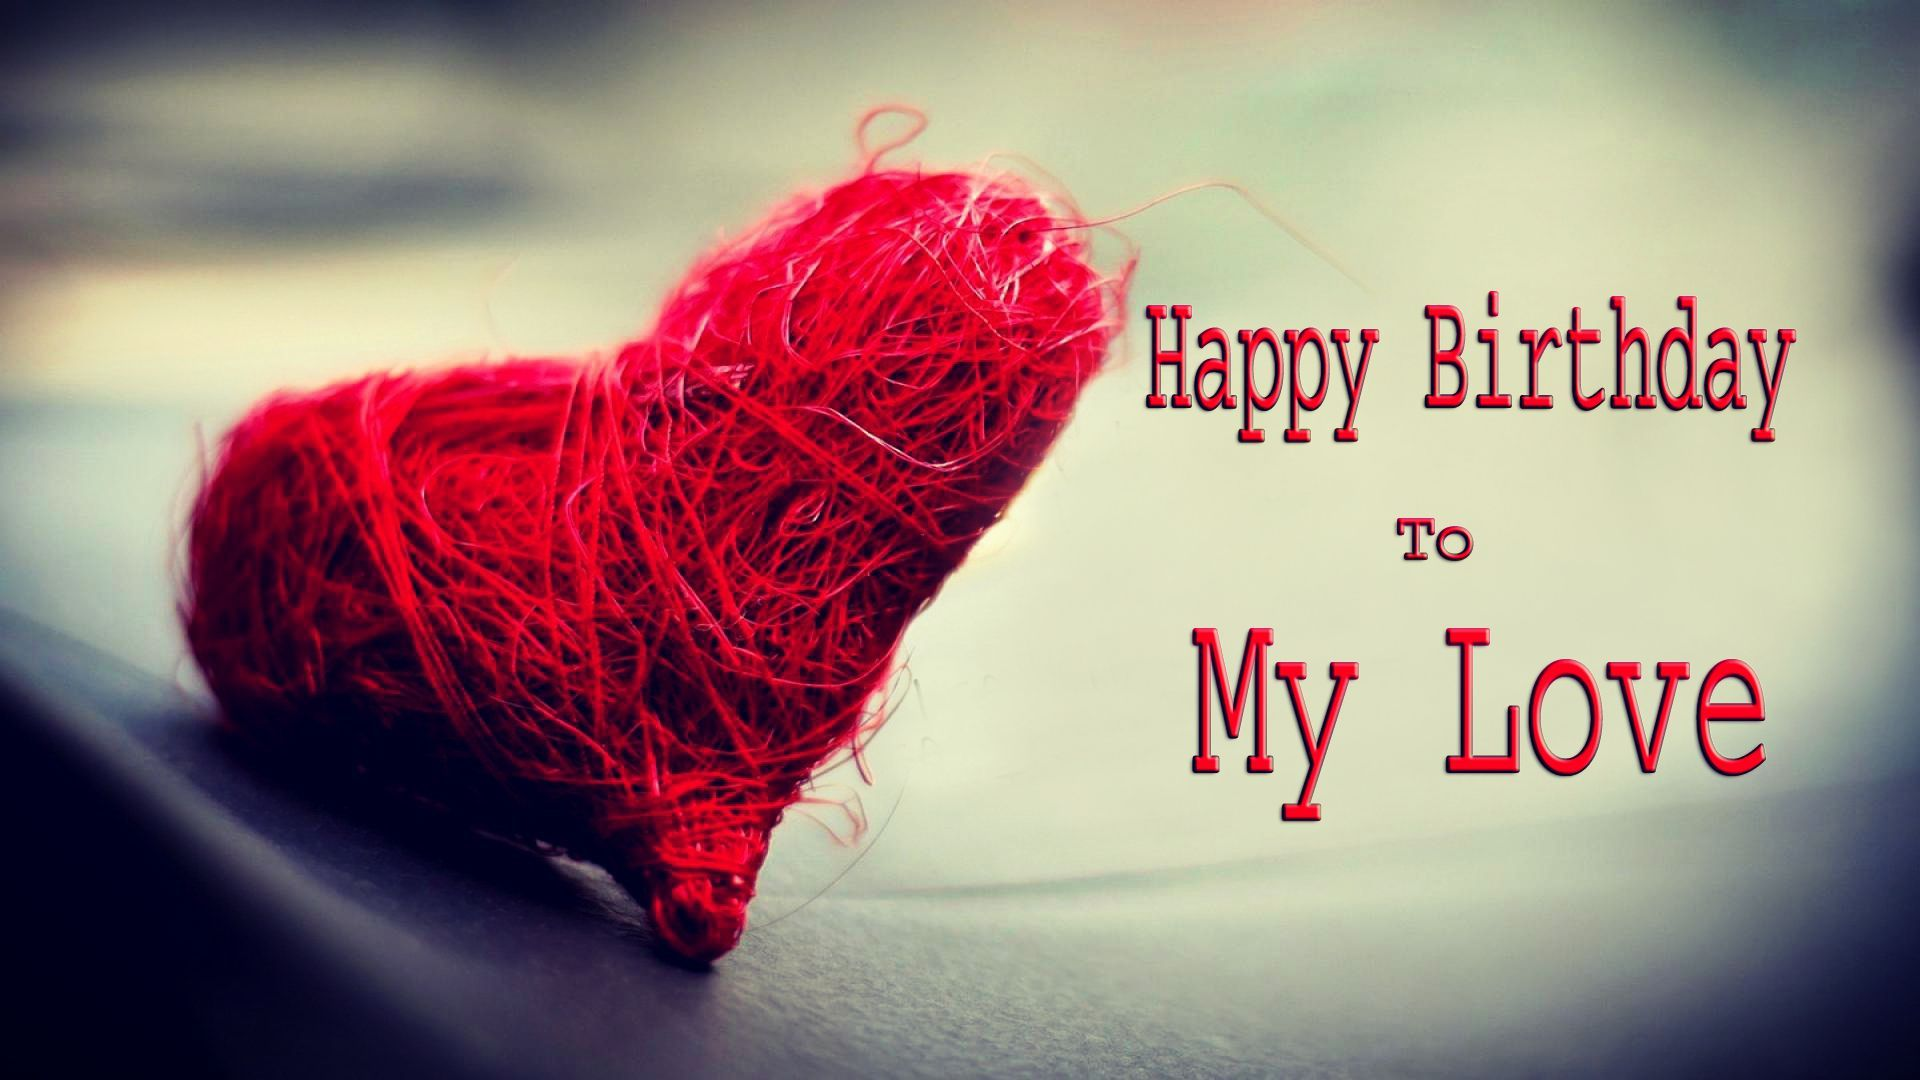 Happy birthday my love images and quotes happy birthday wishes happy birthday my love images and quotes m4hsunfo